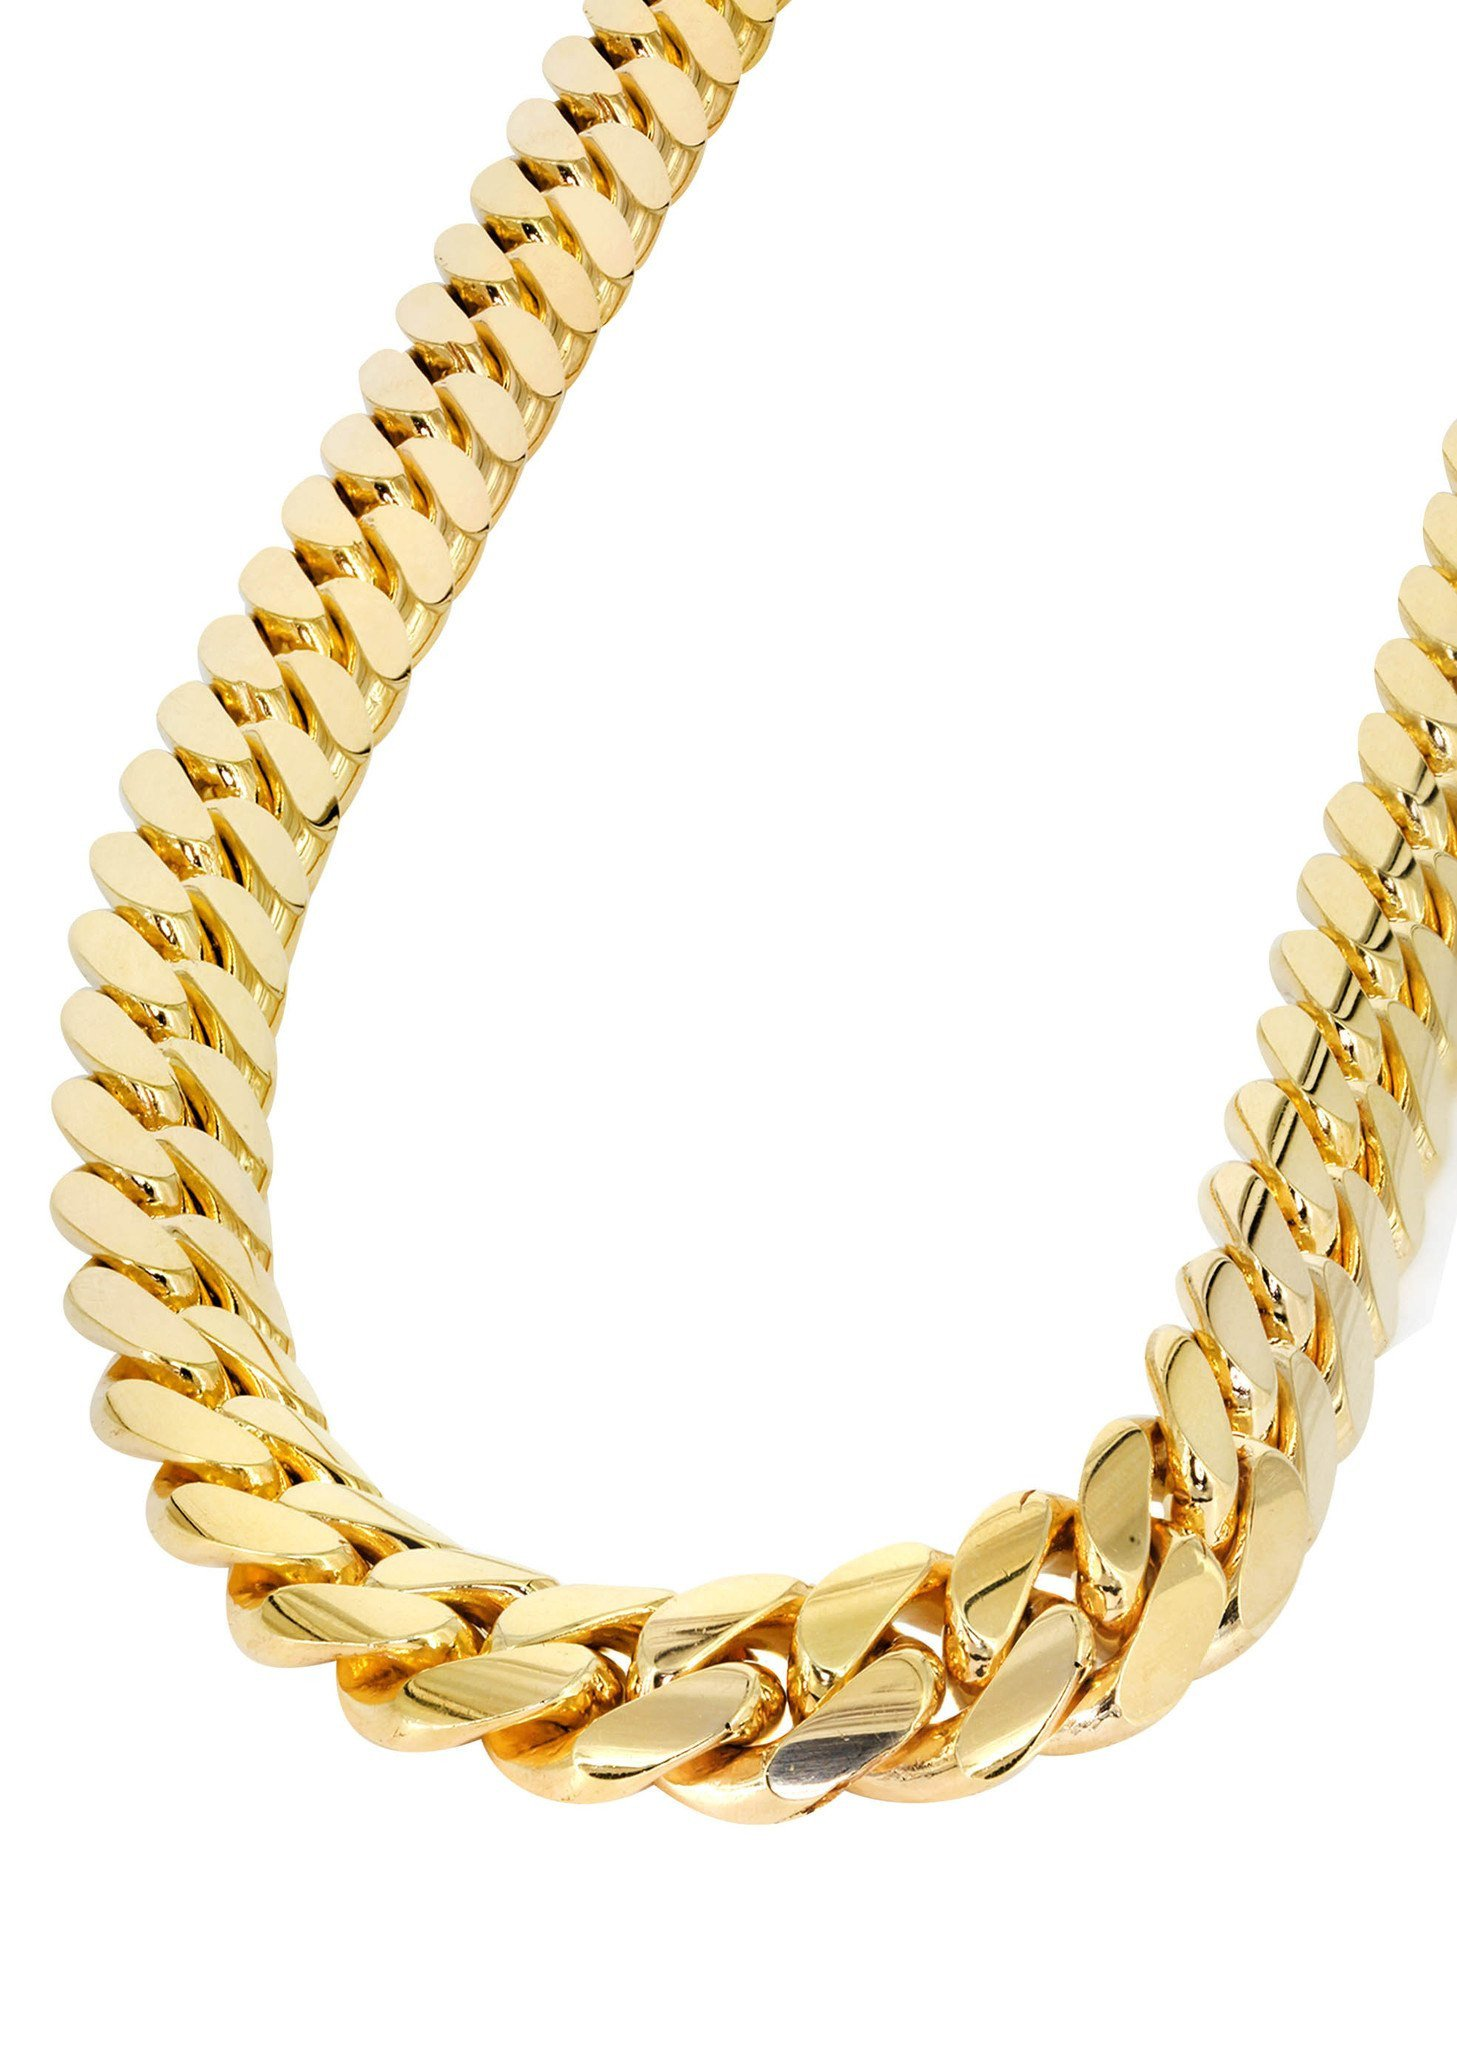 Mens Chain Solid Miami Cuban Link 10k Gold Gold Chains For Men Chains For Men Cuban Link Chain